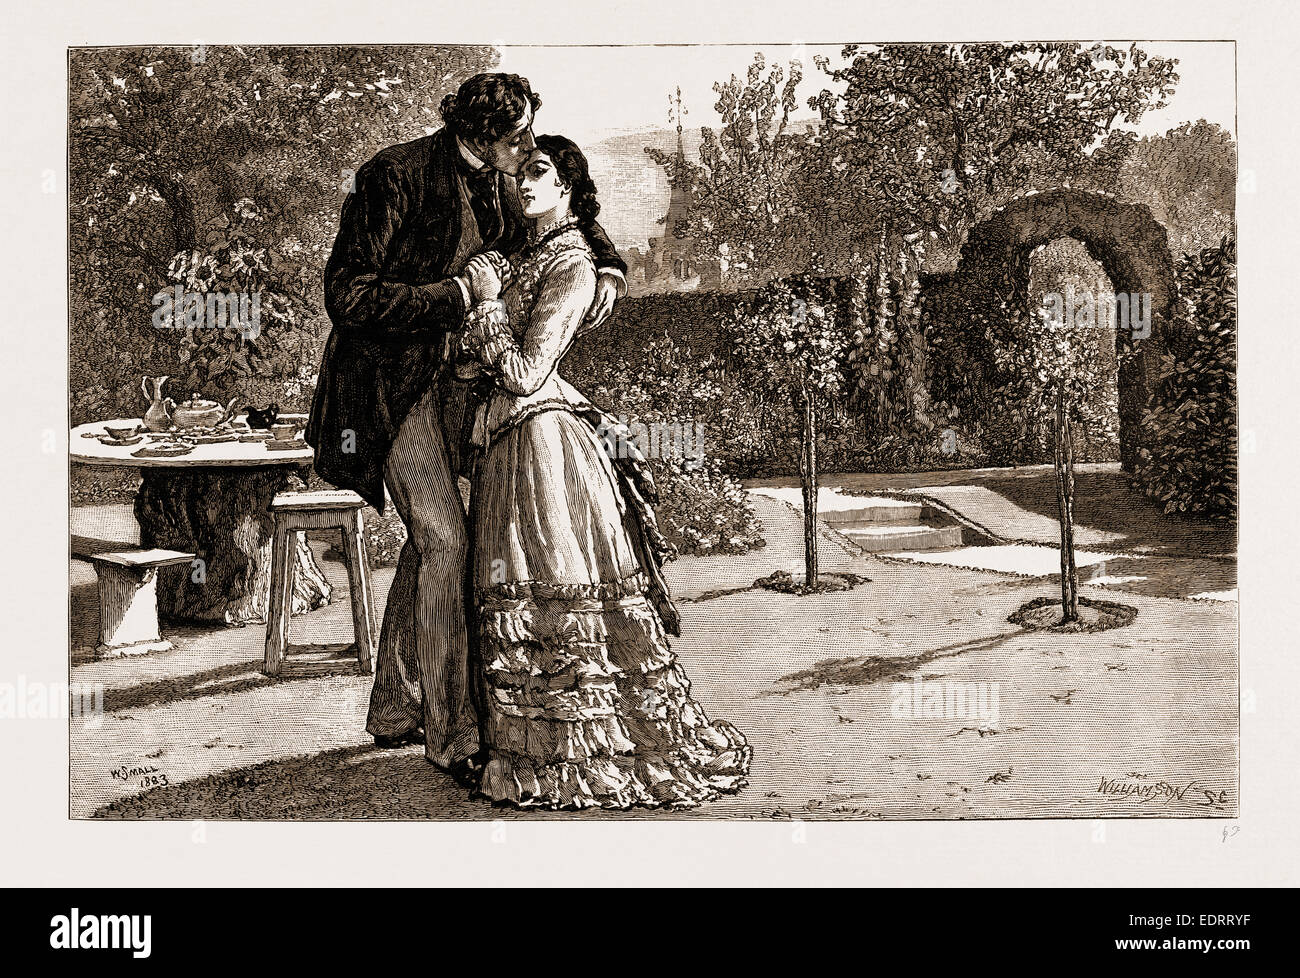 THIRLBY HALL, DRAWN BY WILLIAM SMALL, 1883; Yielding to an uncontrollable impulse, I caught her suddenly in my arms - Stock Image